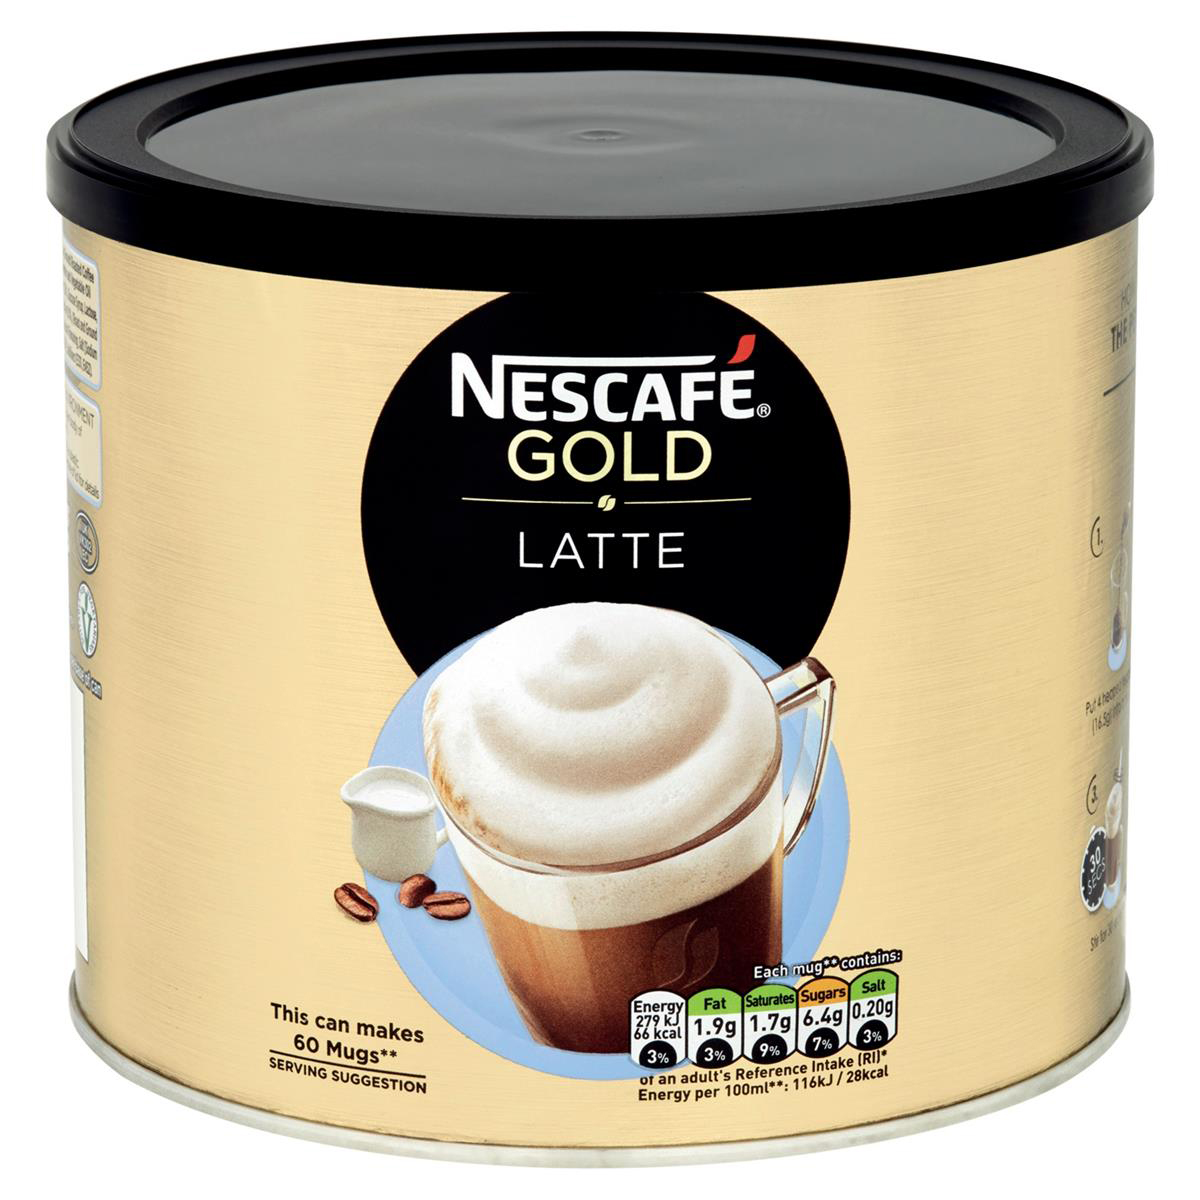 Coffee Nescafe Gold Latte Instant Coffee 1kg Ref 12314885